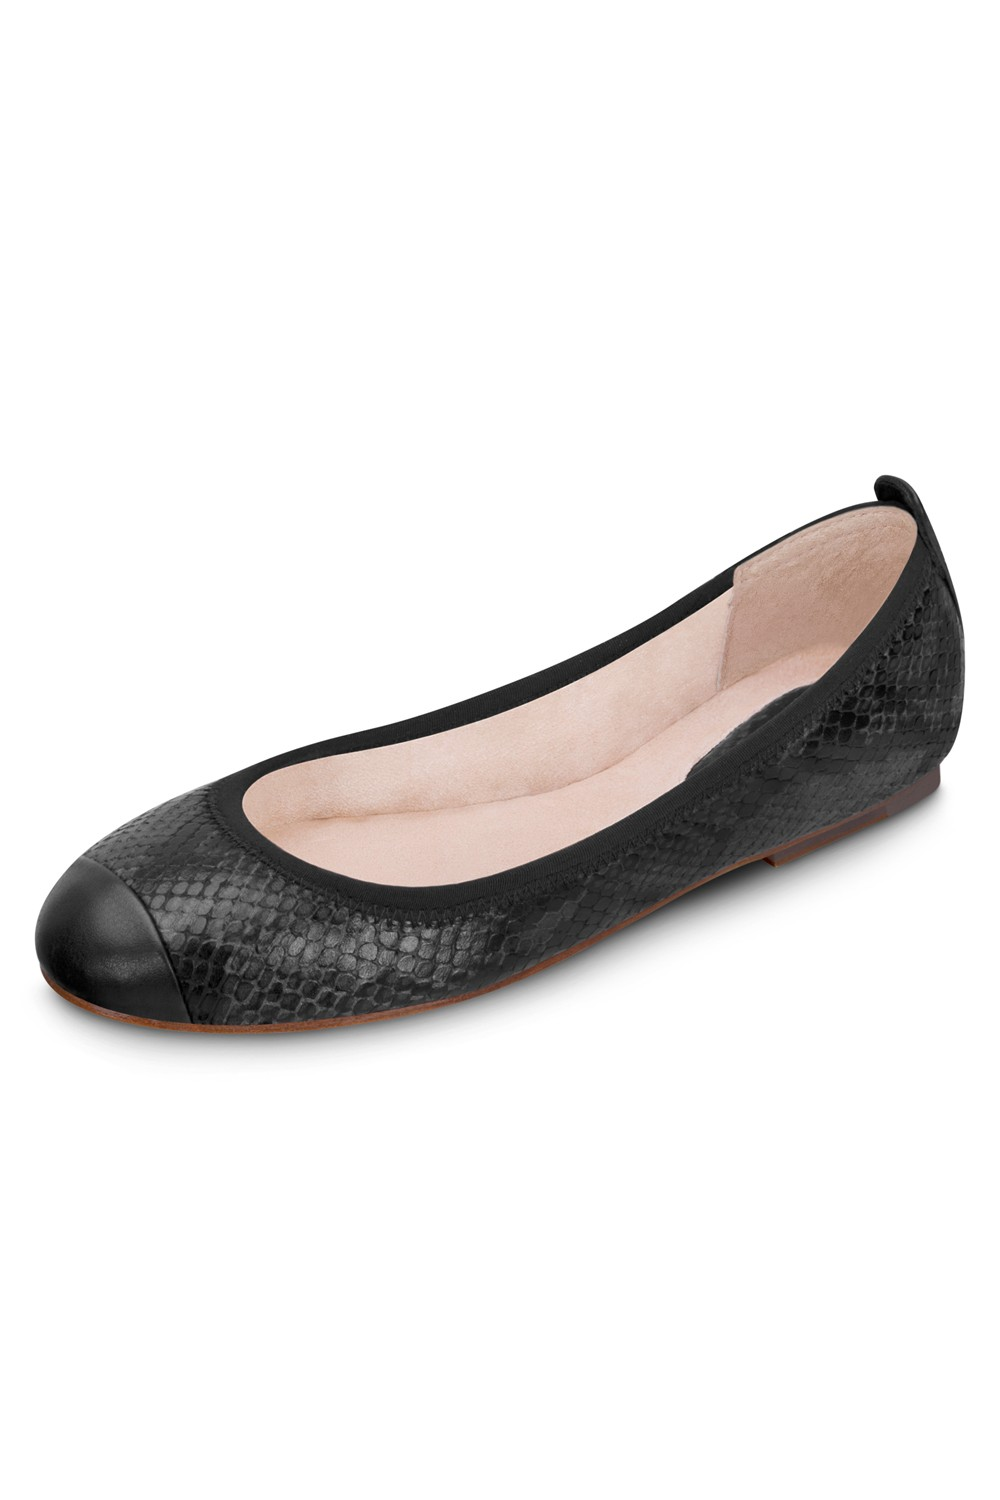 Carina Ballet Flat Shoes Womens Fashion Shoes